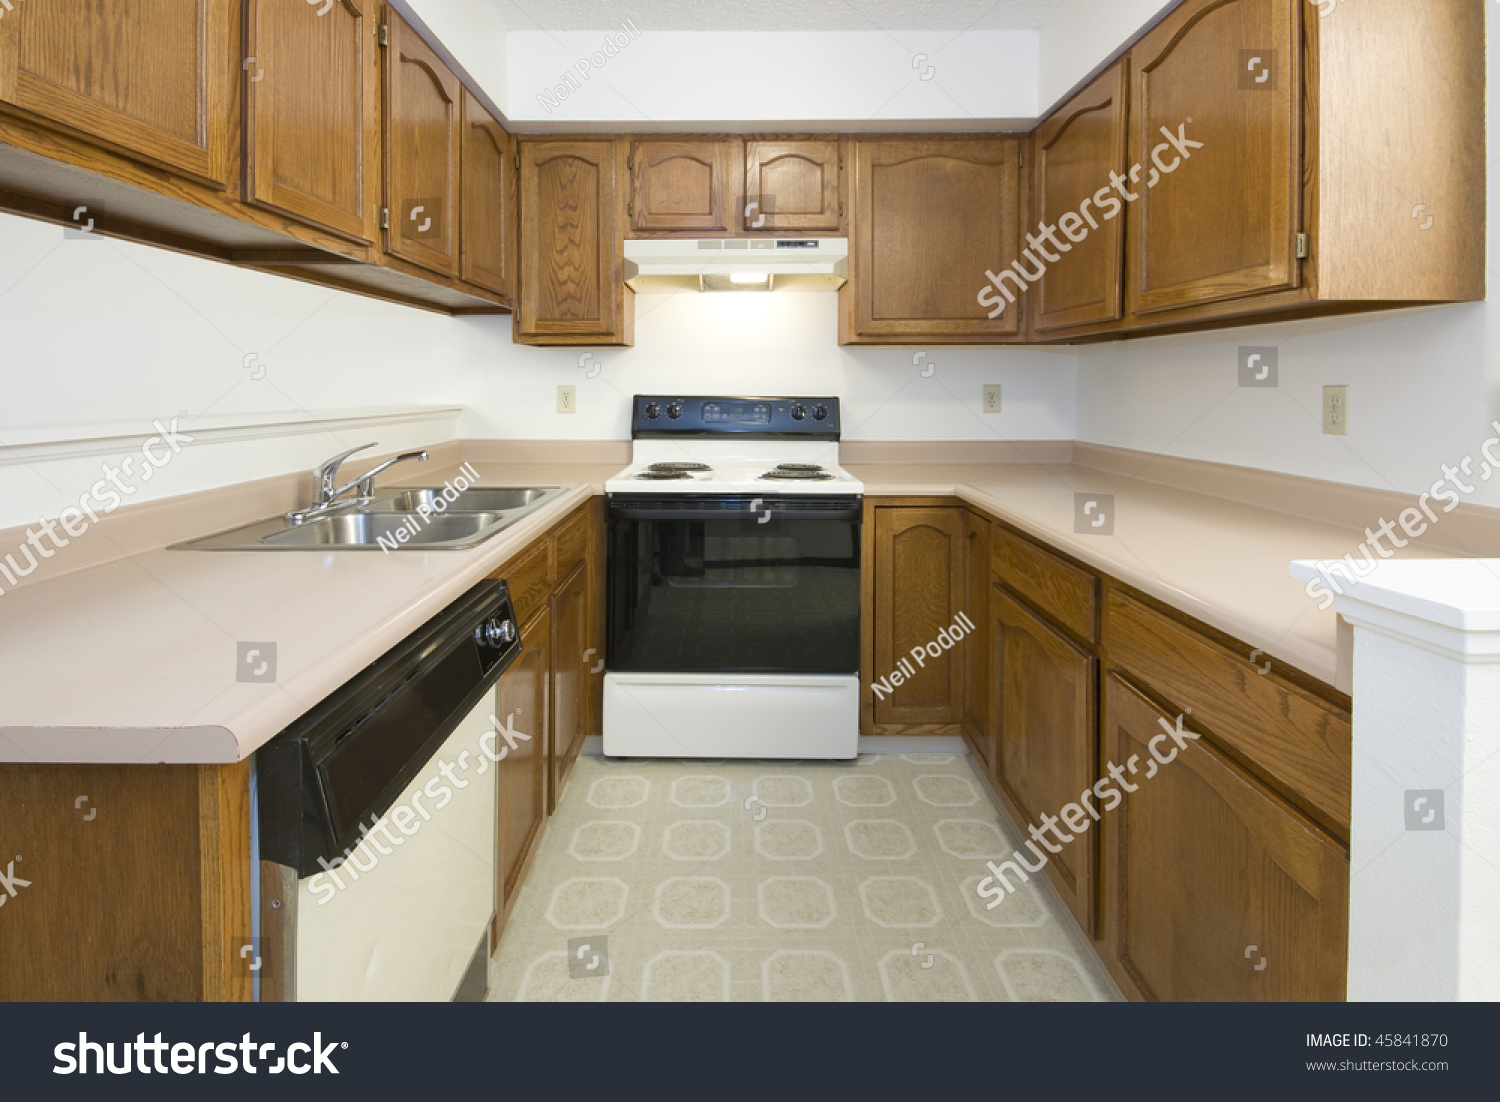 Remodeling Old Kitchen Ugly Empty Old Kitchen Before Remodeling Stock Photo 45841870